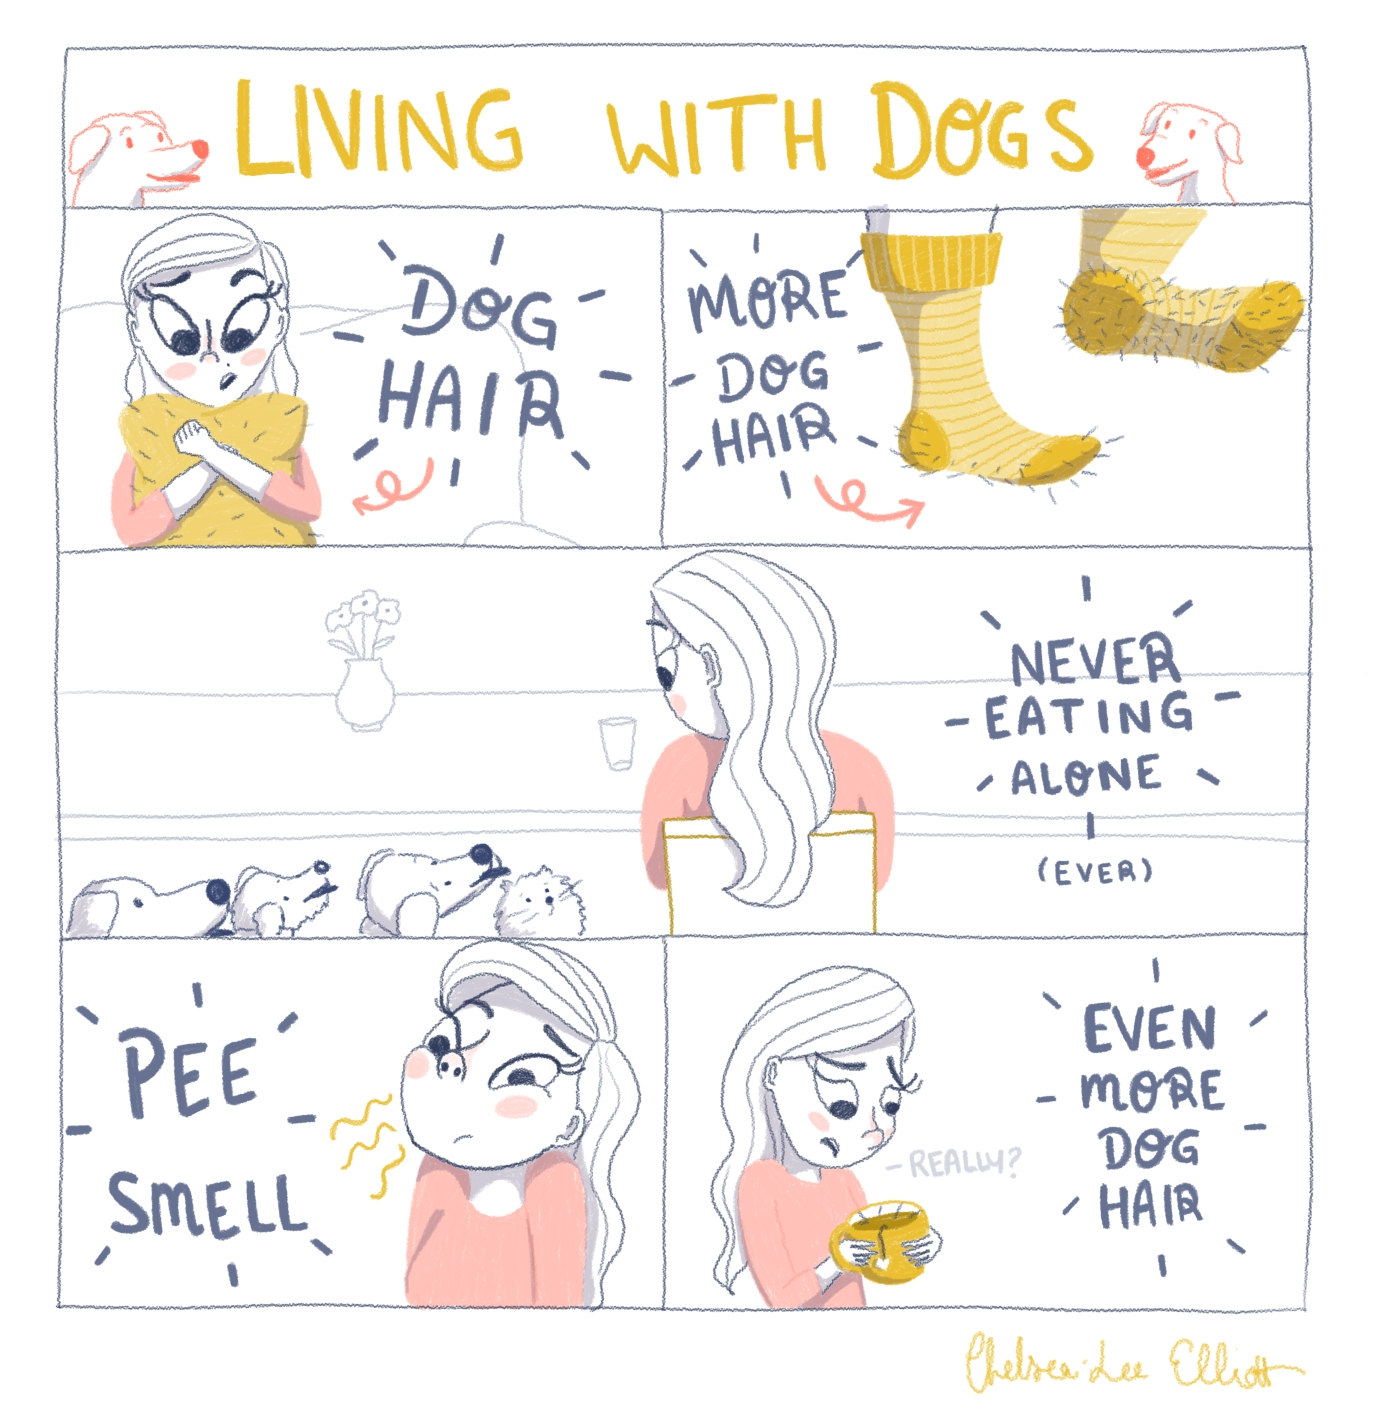 Living with Dogs.jpg